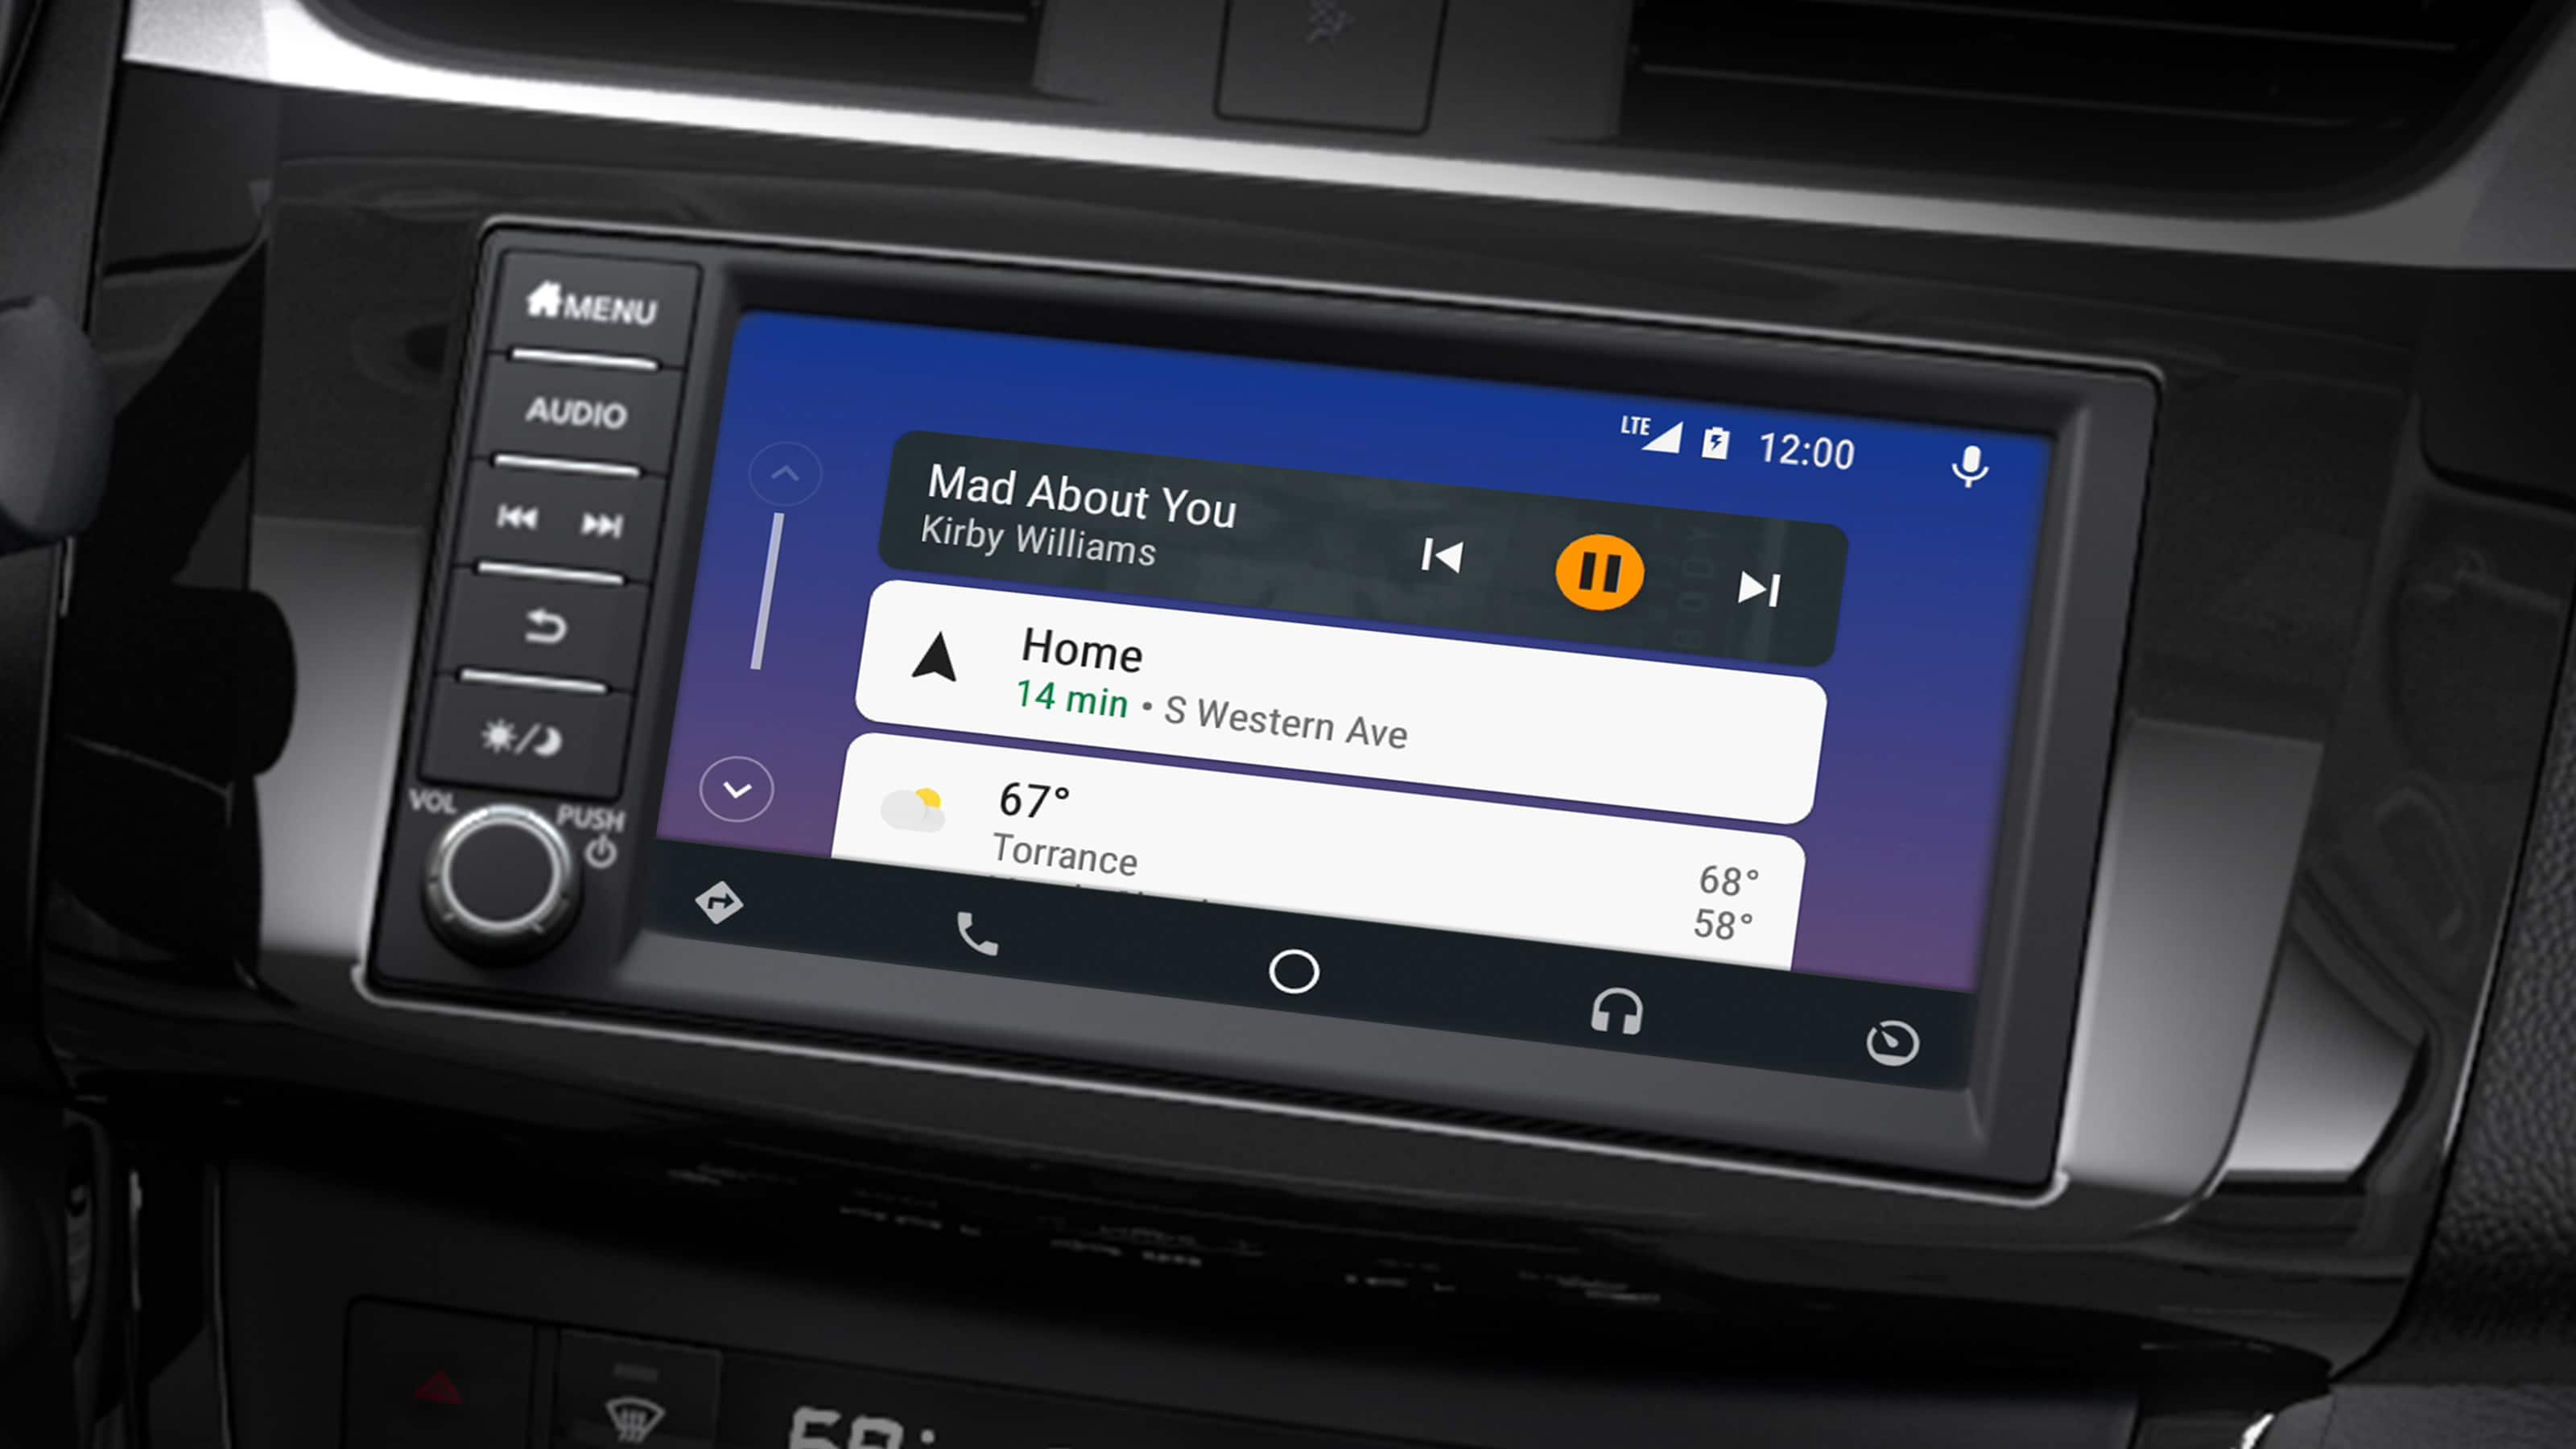 Touchscreen Display in the 2019 Sentra